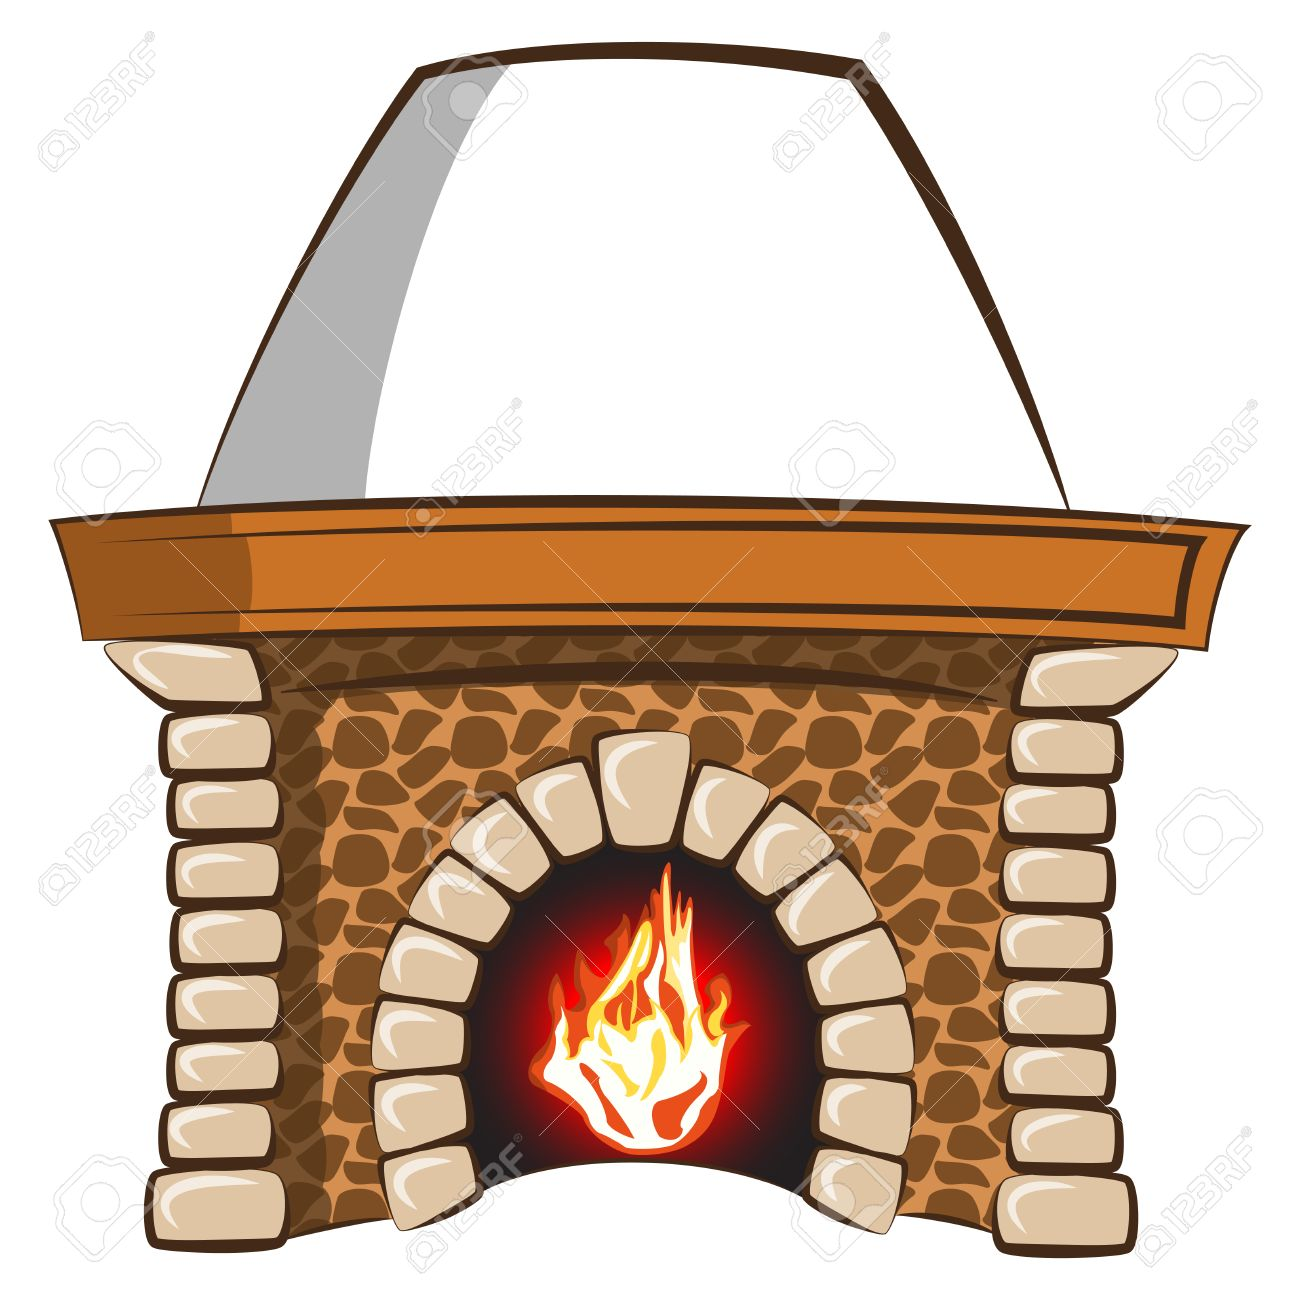 Collection of free download. Fireplace clipart cozy fireplace